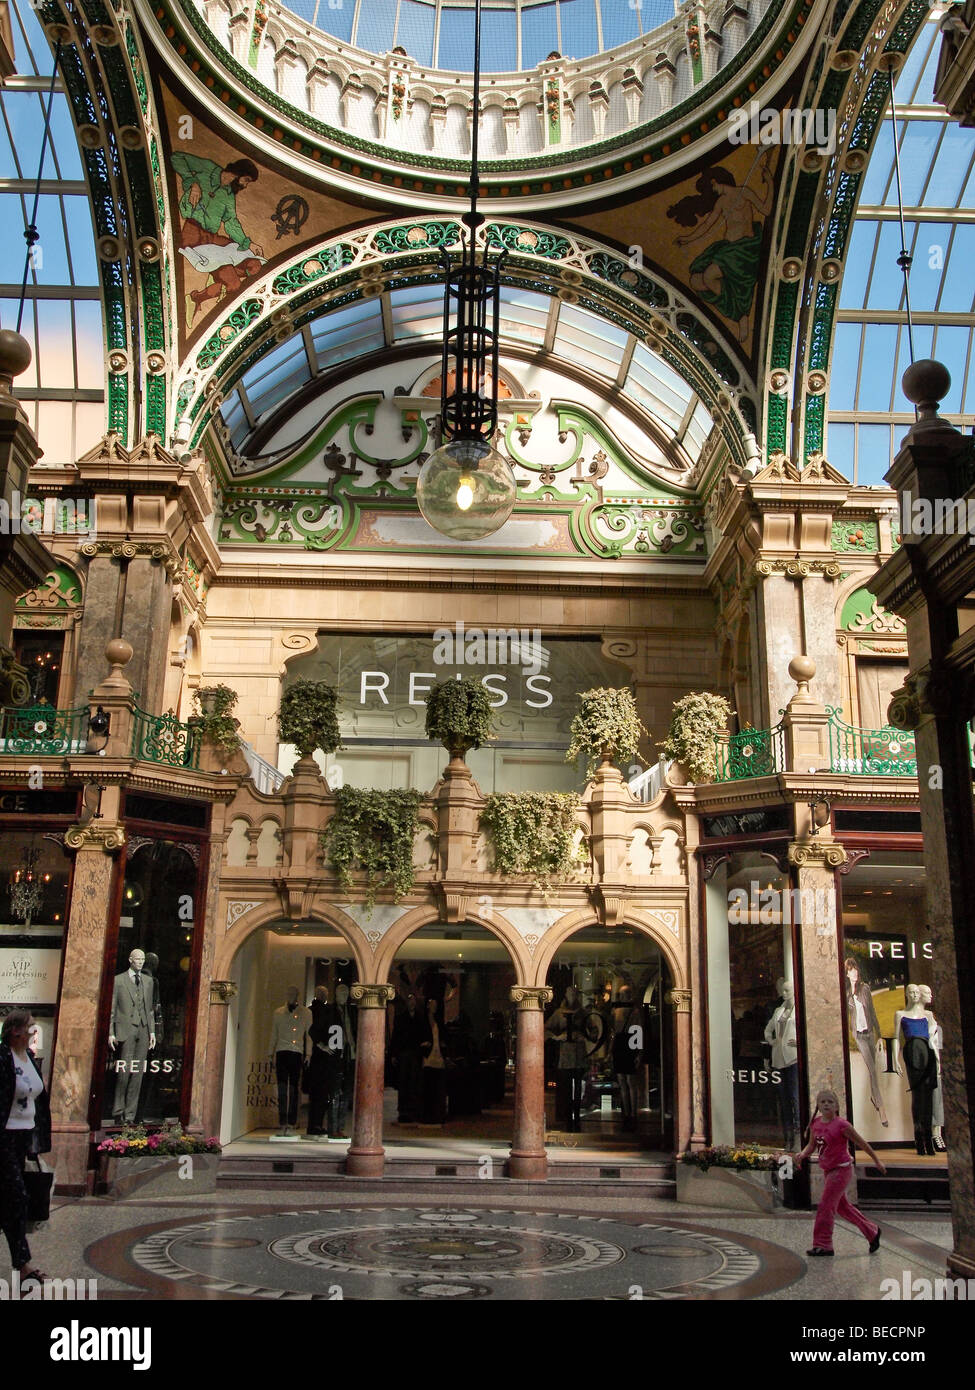 Crossing of the County Arcade Leeds UK - Stock Image